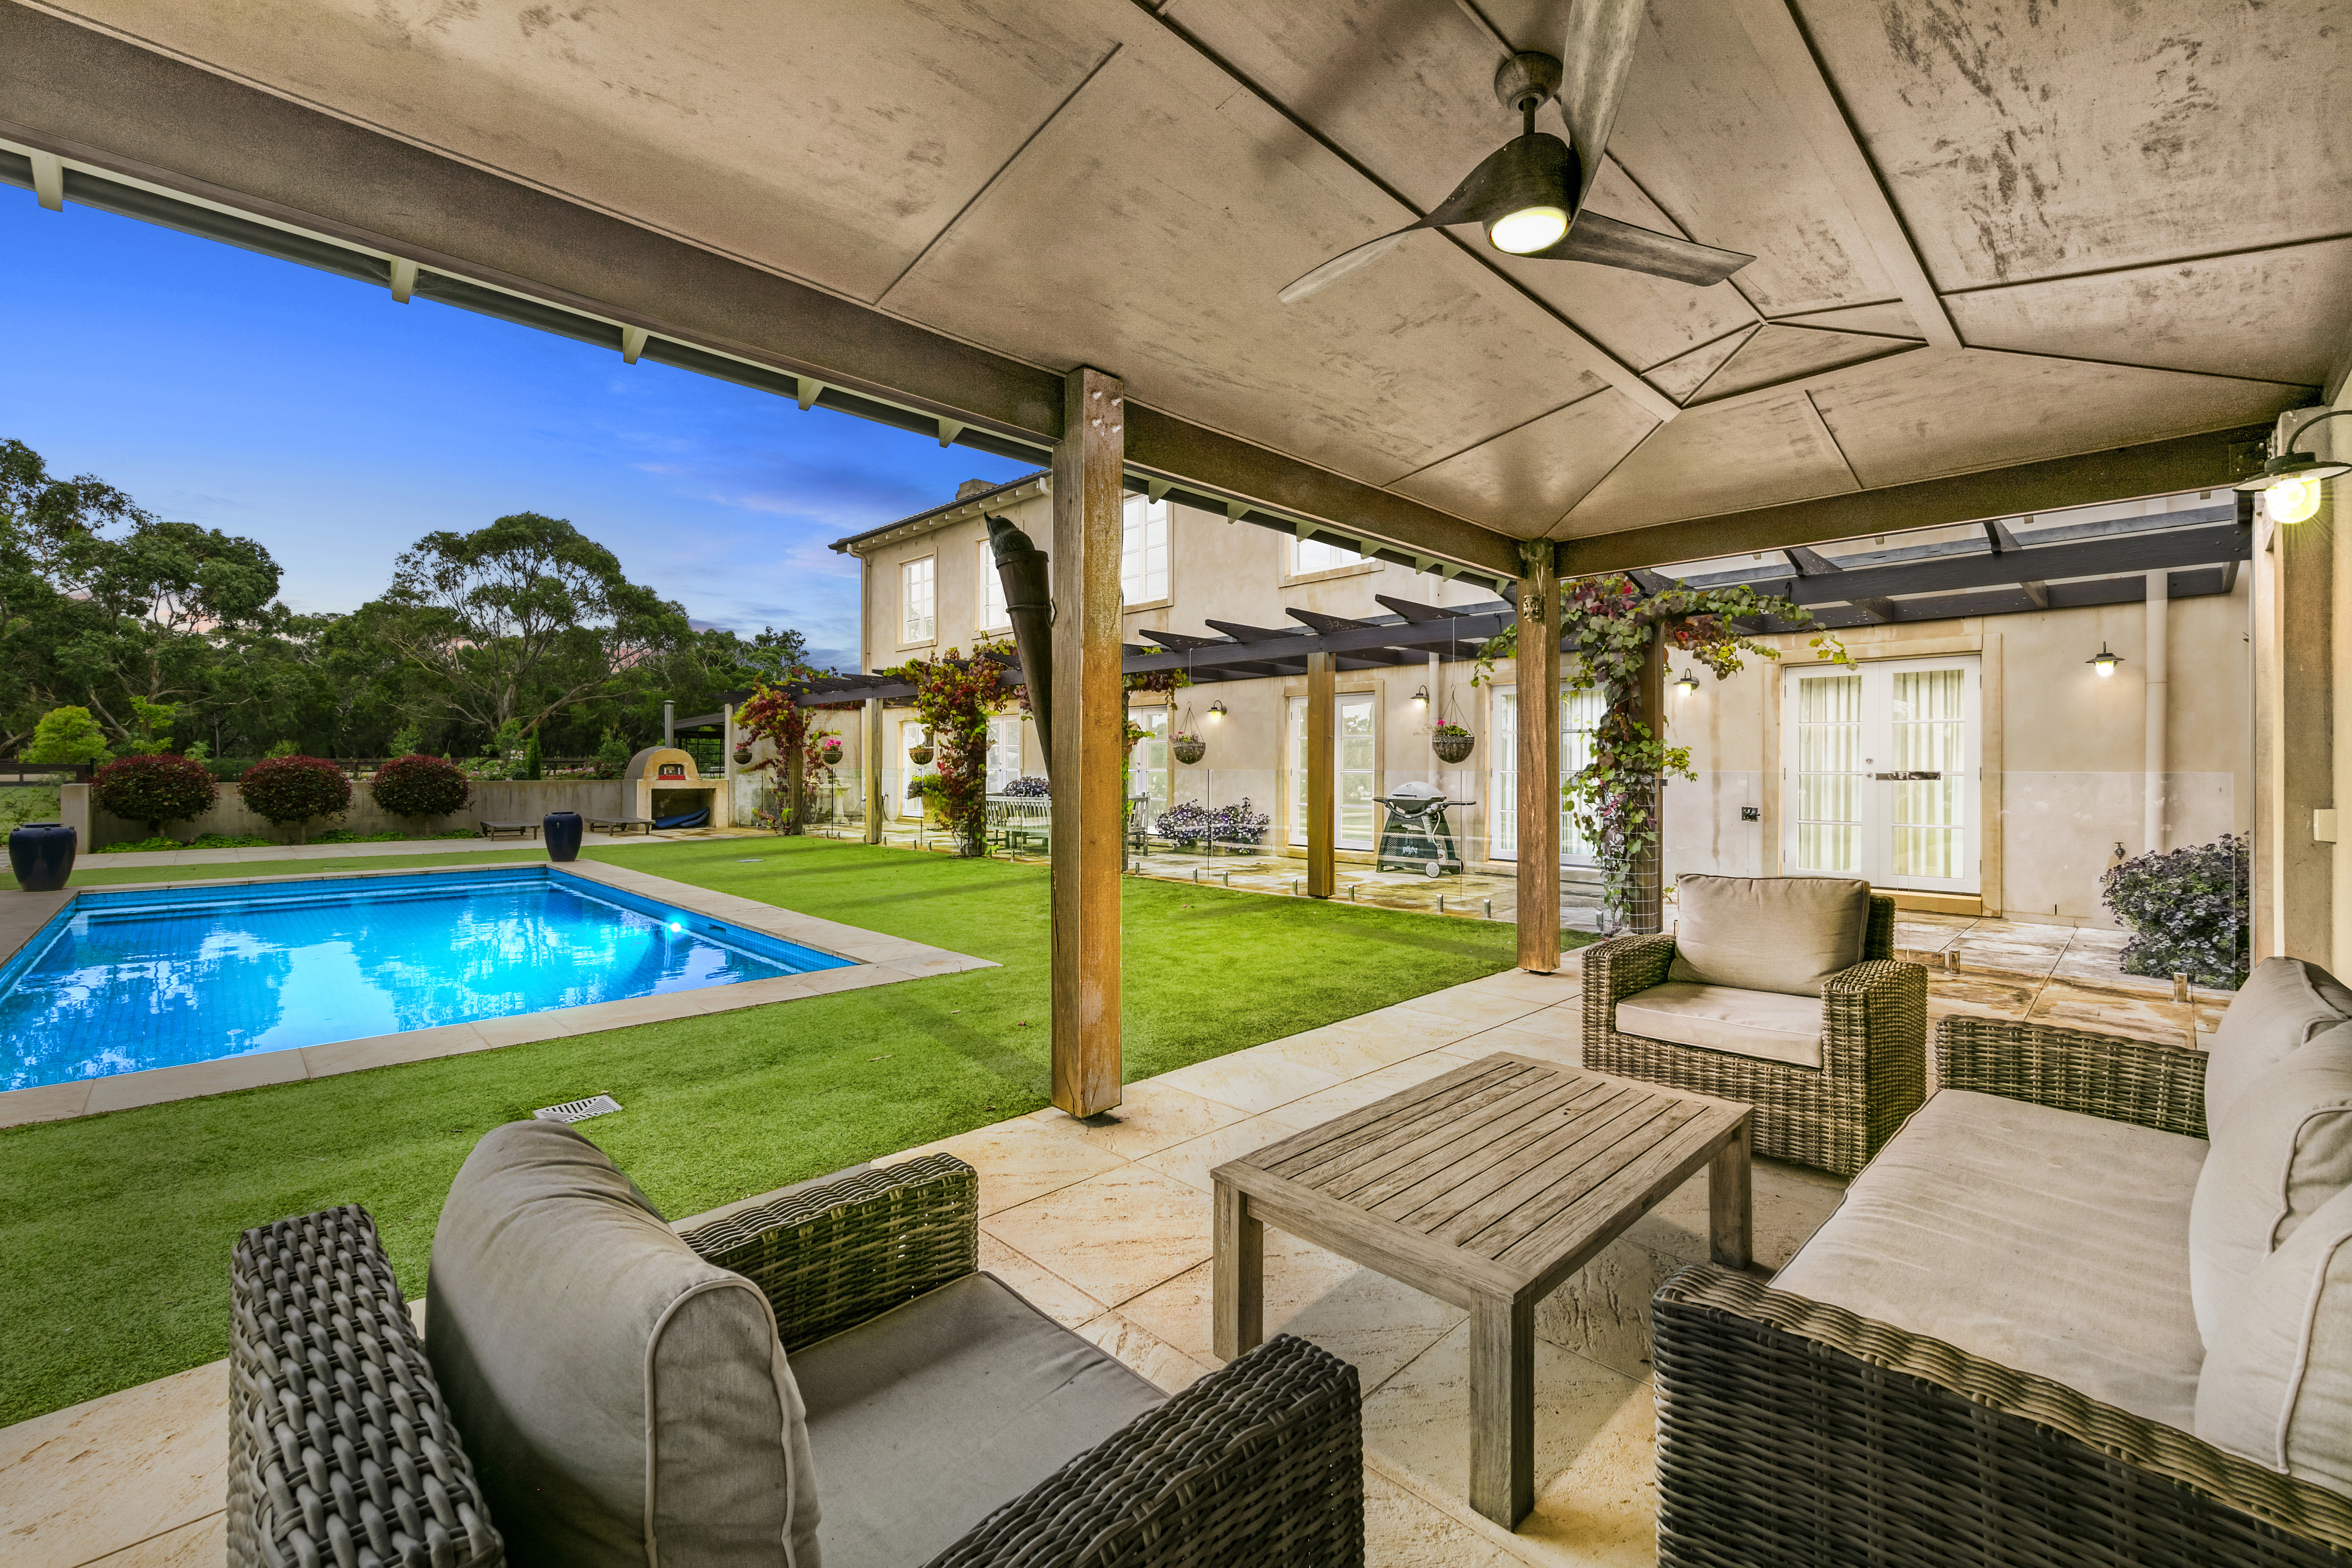 https://assets.boxdice.com.au/homesacreagespecialists/attachments/e98/f07/request_an_appraisal.jpg?59a2dac7bf678ef56c69491b320628ee